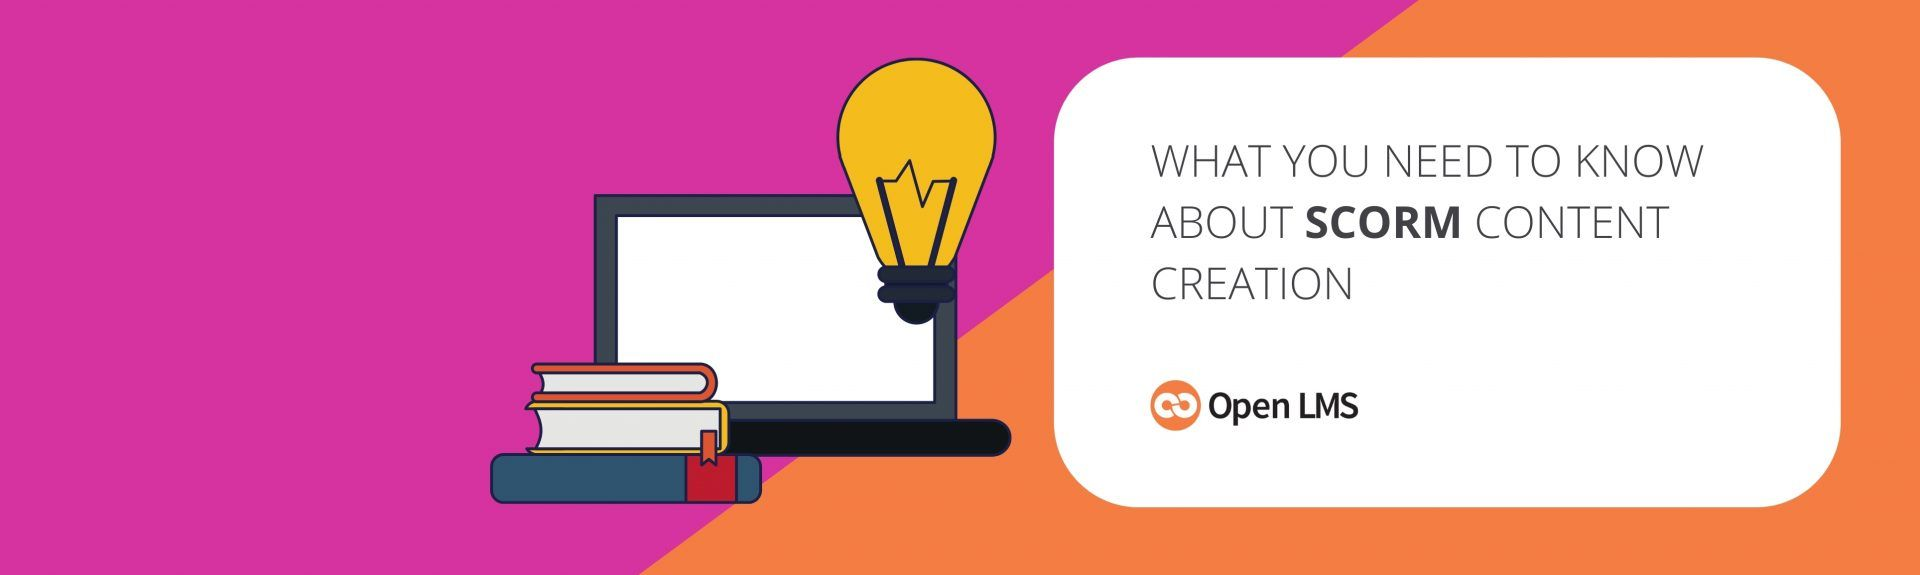 What You Need to Know About SCORM Content Creation